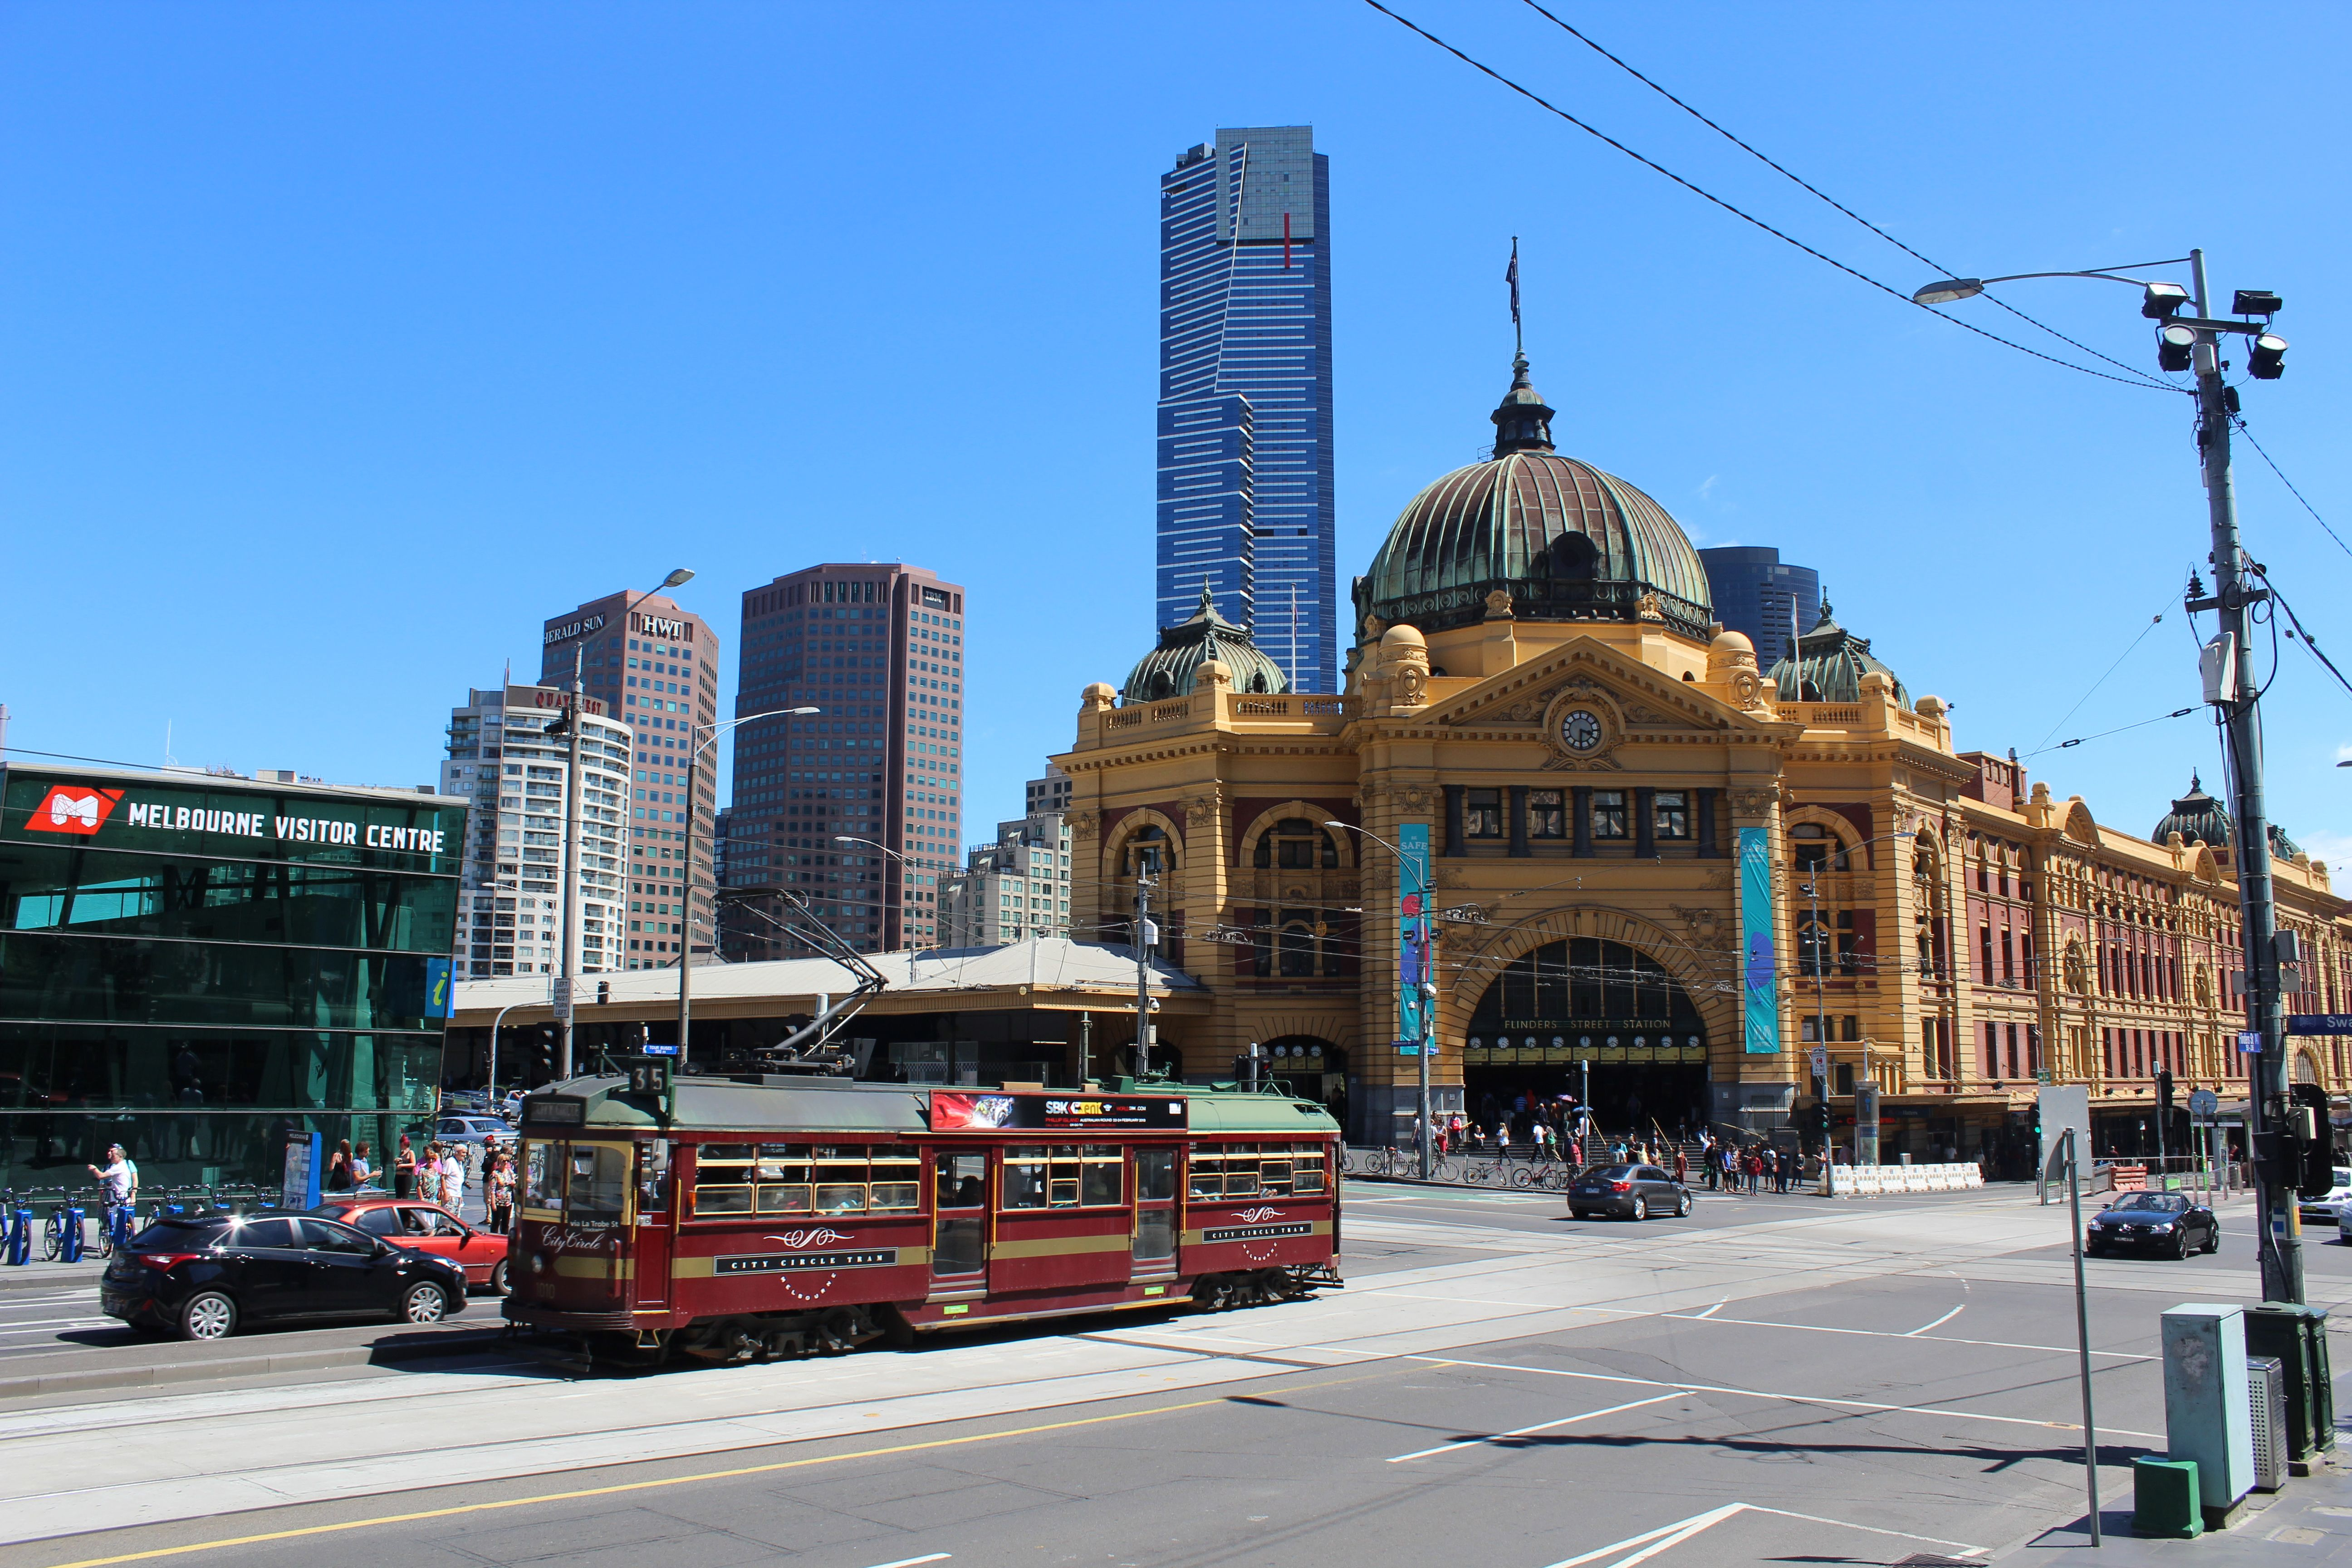 City Circle 1010 in Flinders Street passing Federation Square and Flinders Street Station  - Google Search